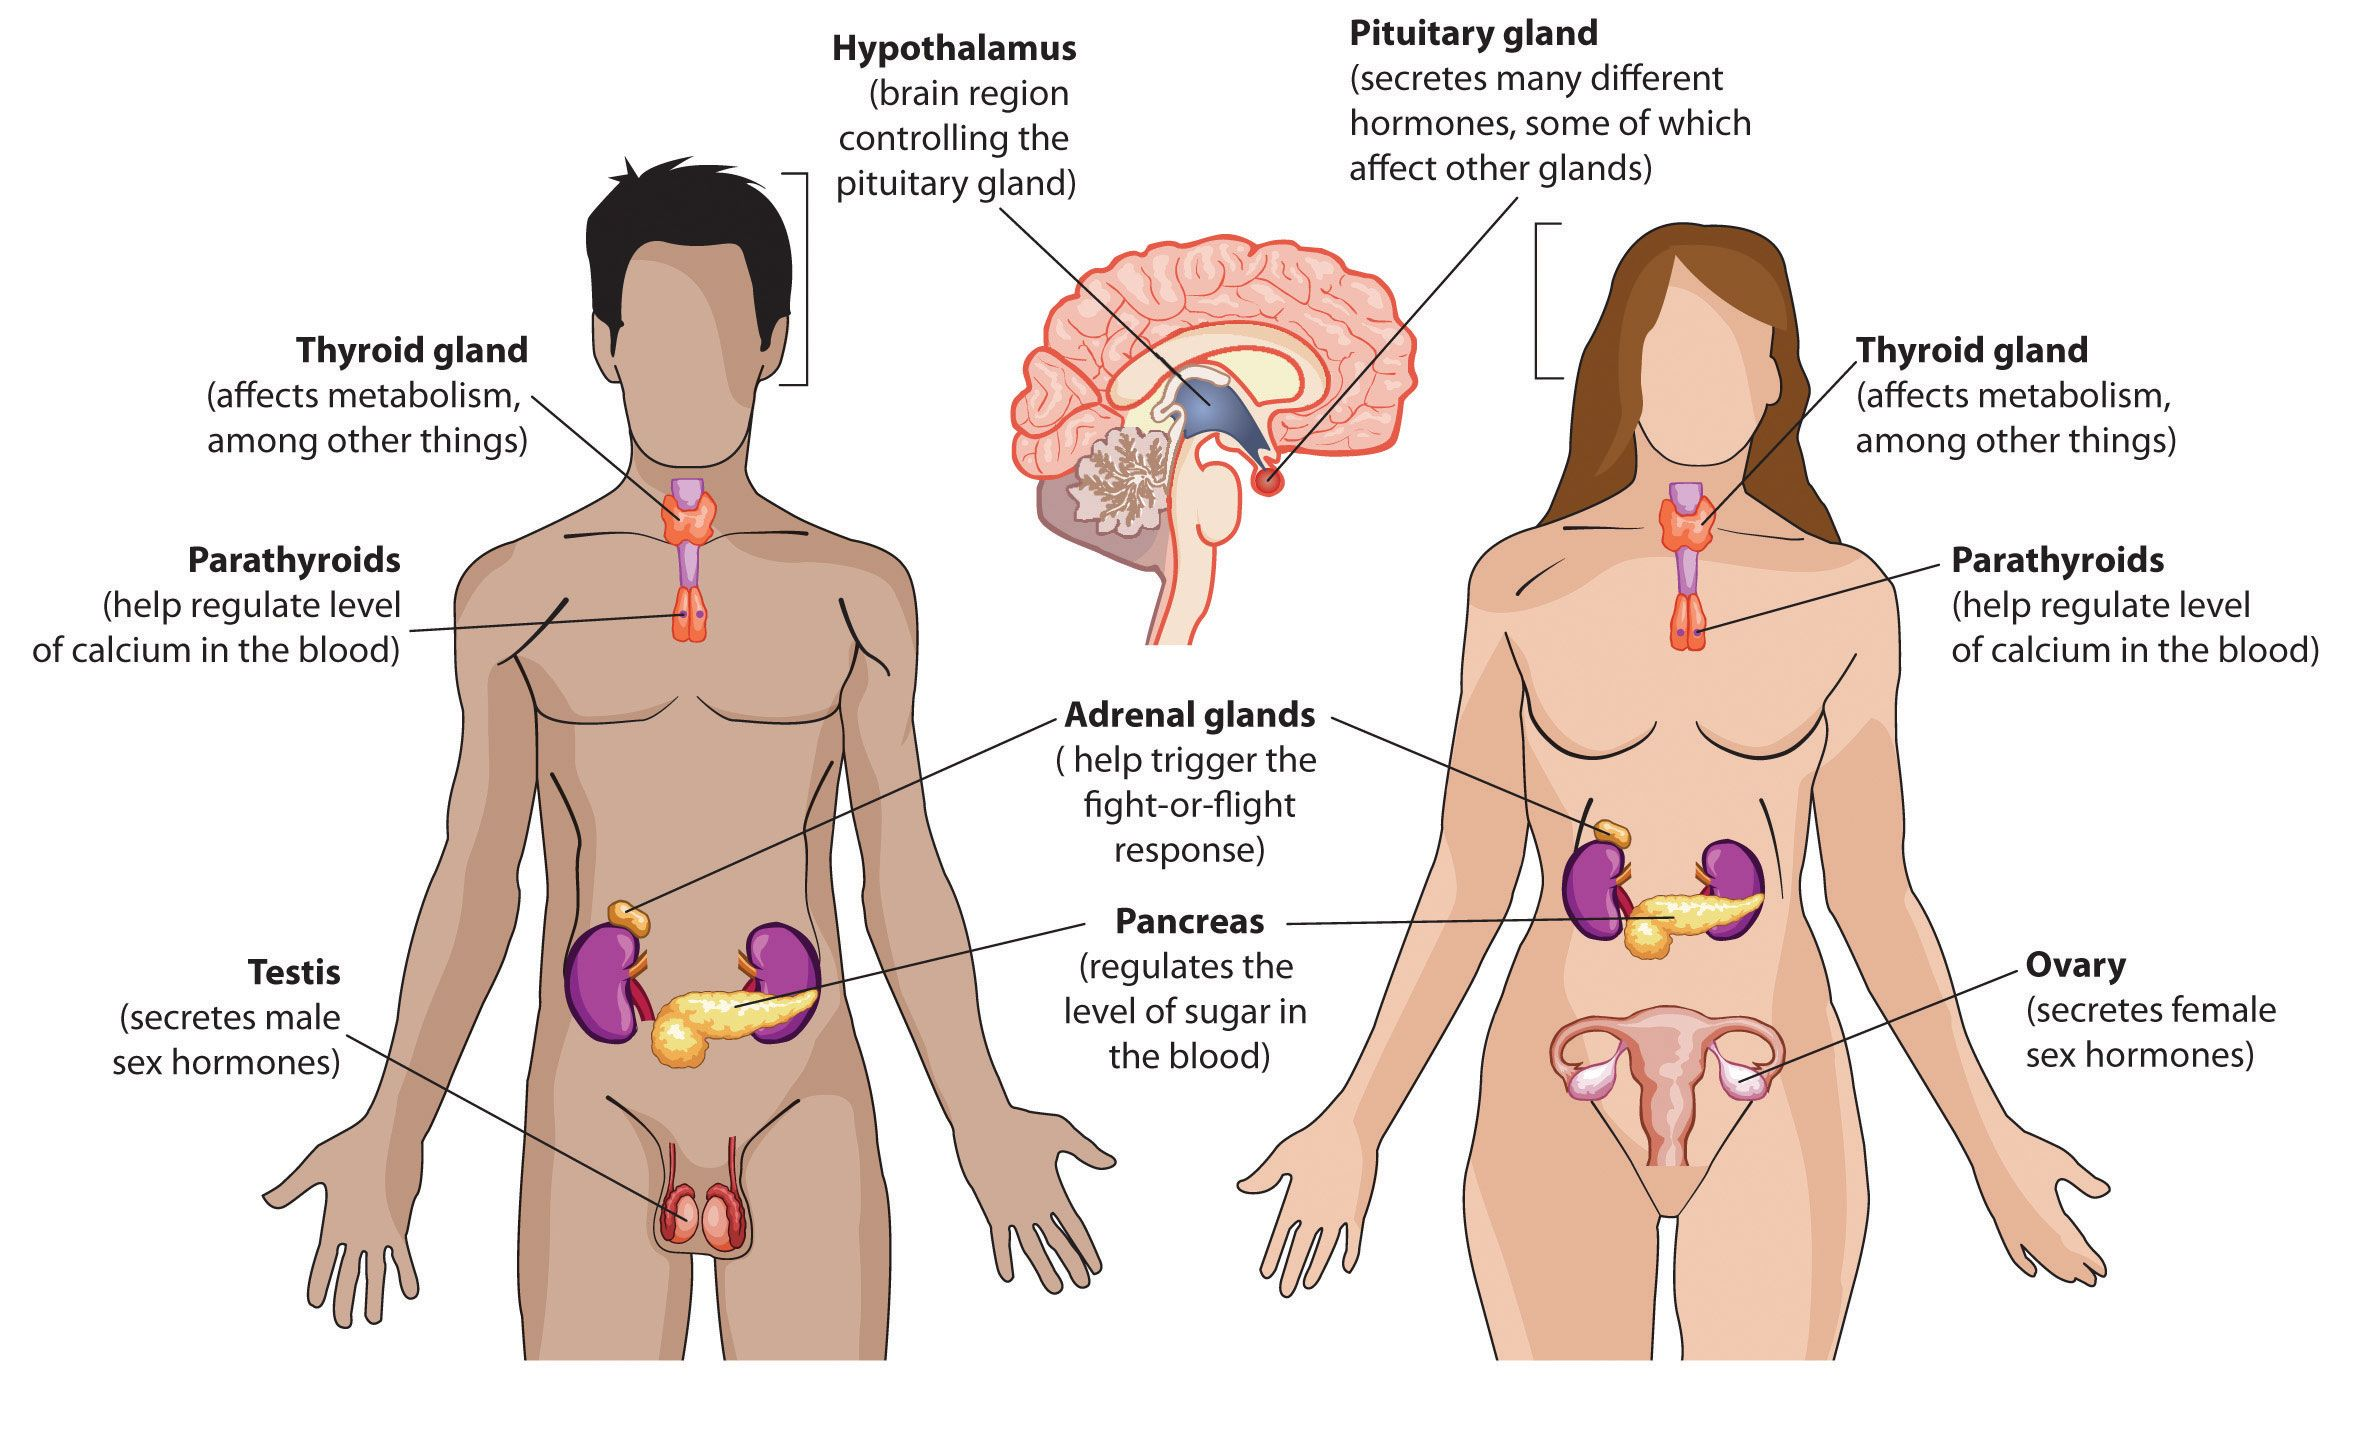 endocrine system diagram pdf | Science - Biology ☣ | Pinterest ...